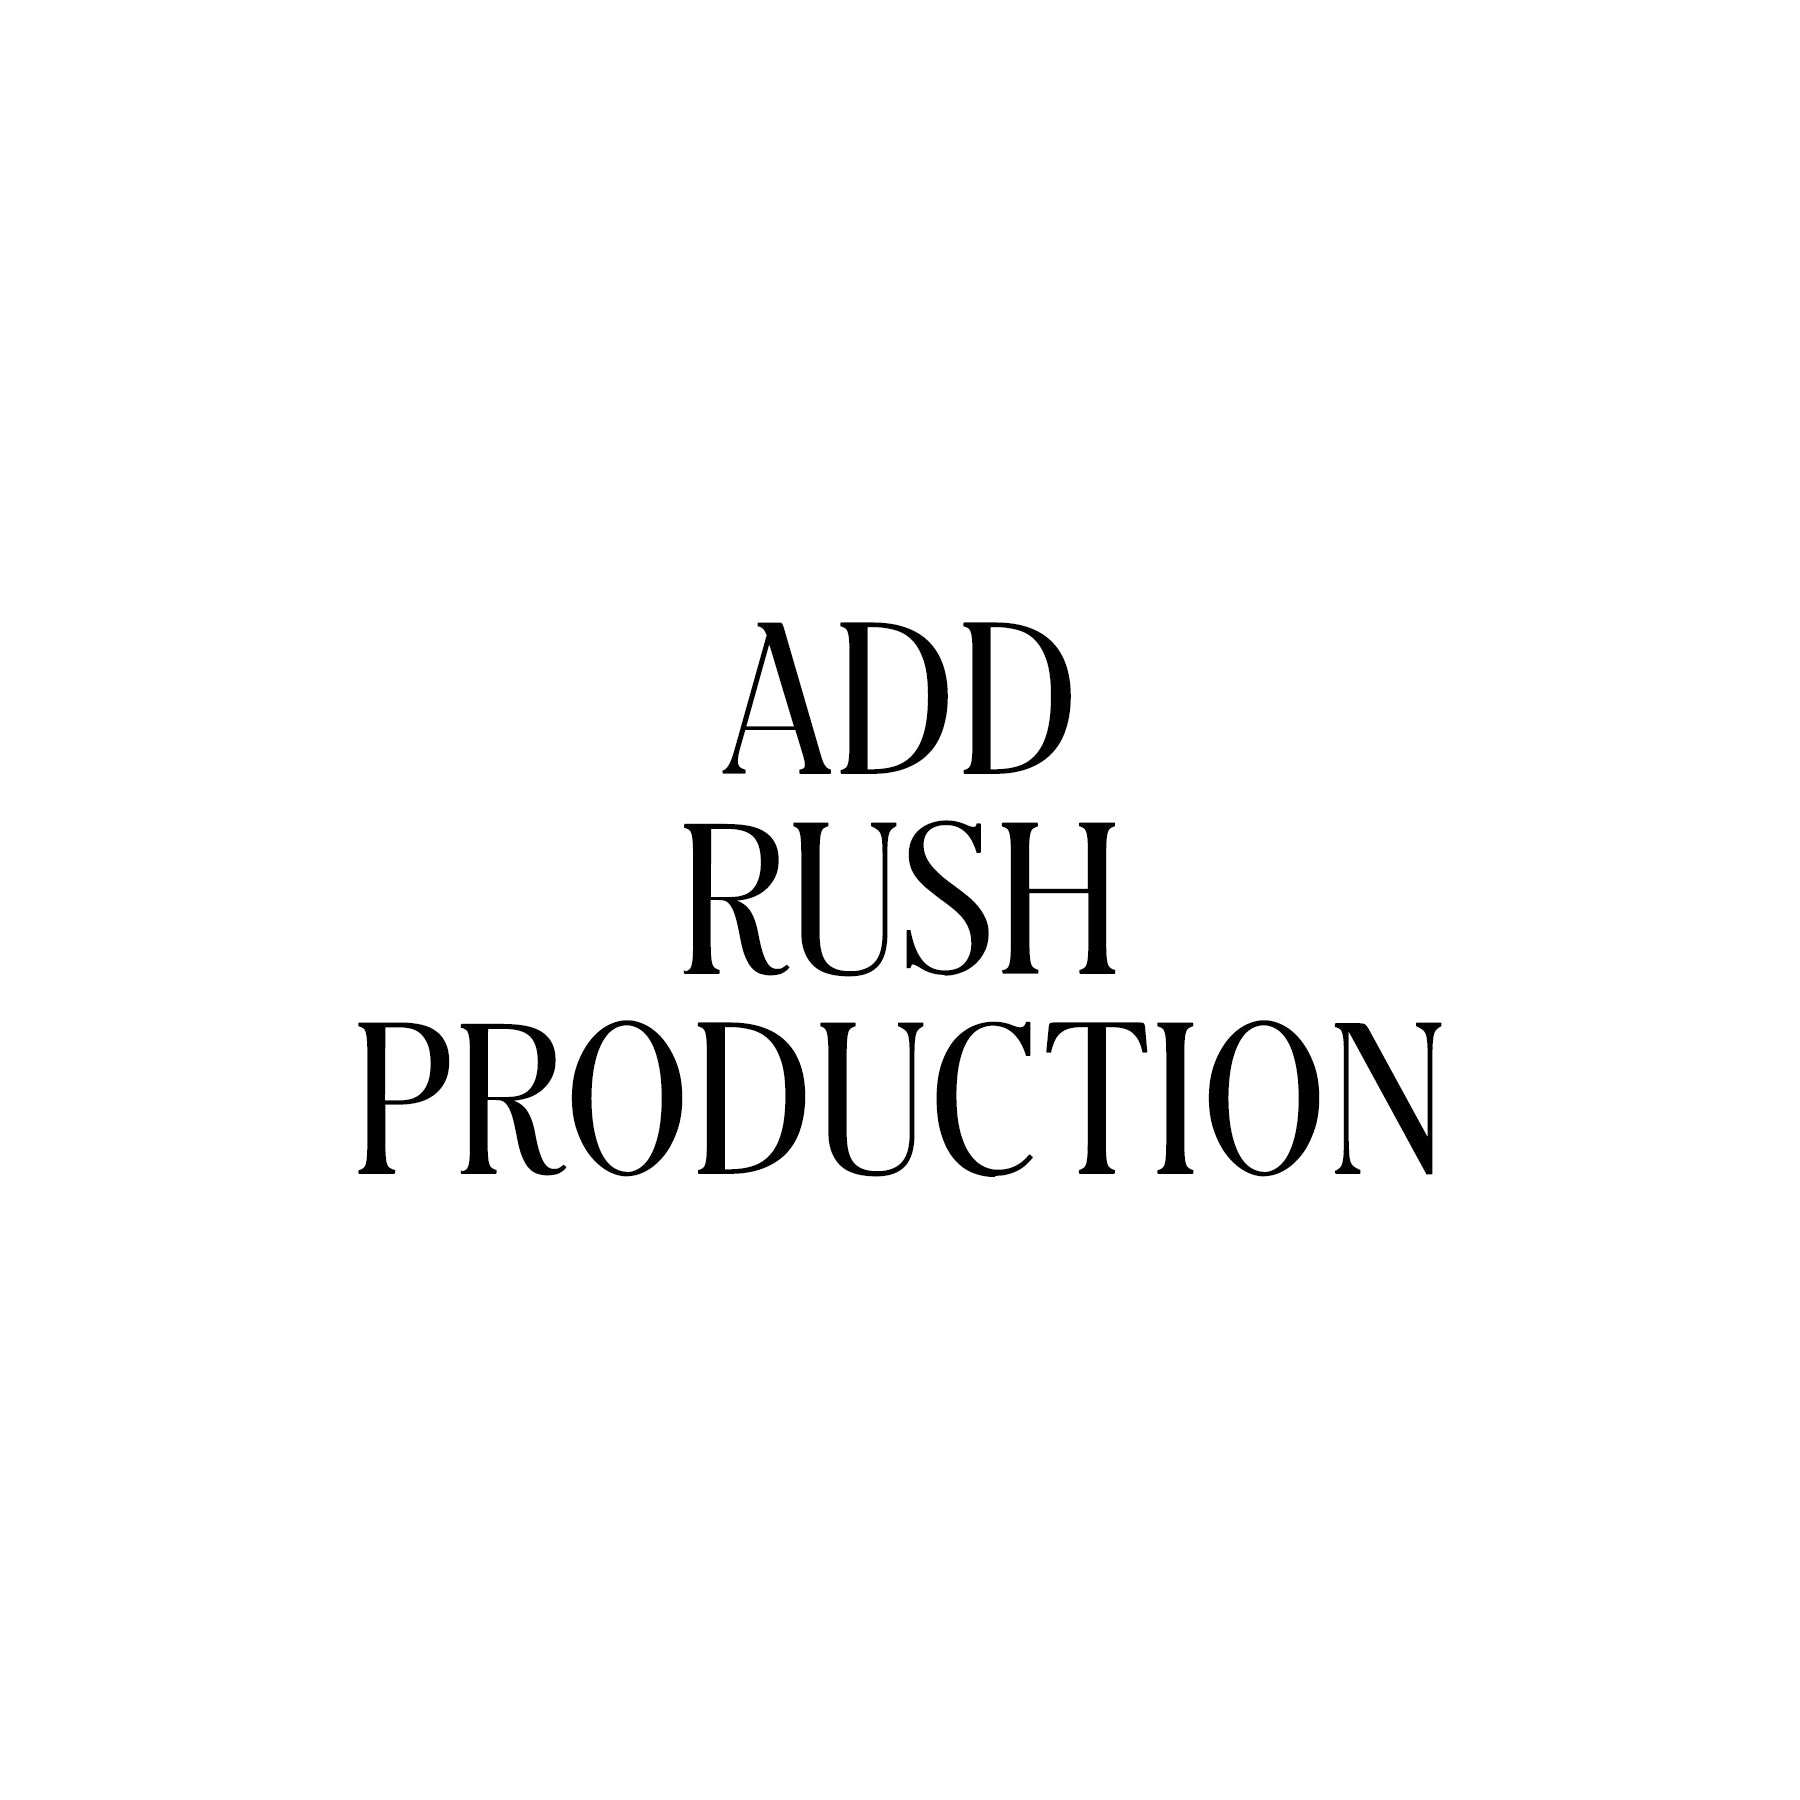 ADD RUSH PRODUCTION TO CUSTOM ORDER